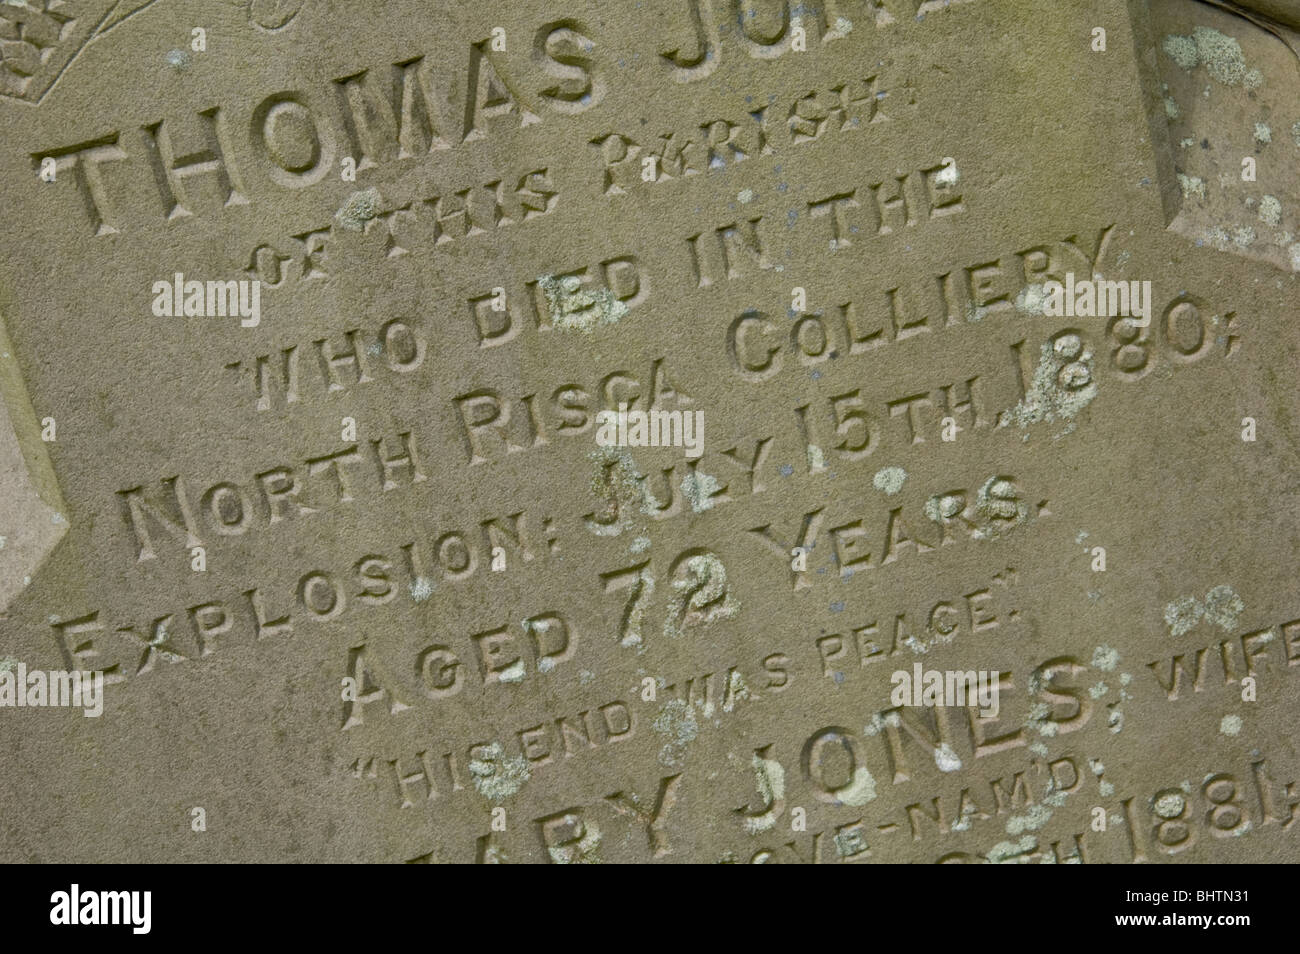 Gravestone of miner aged 72 killed in the North Risca Colliery explosion 15th July 1880 Pontywaun South Wales Valleys - Stock Image